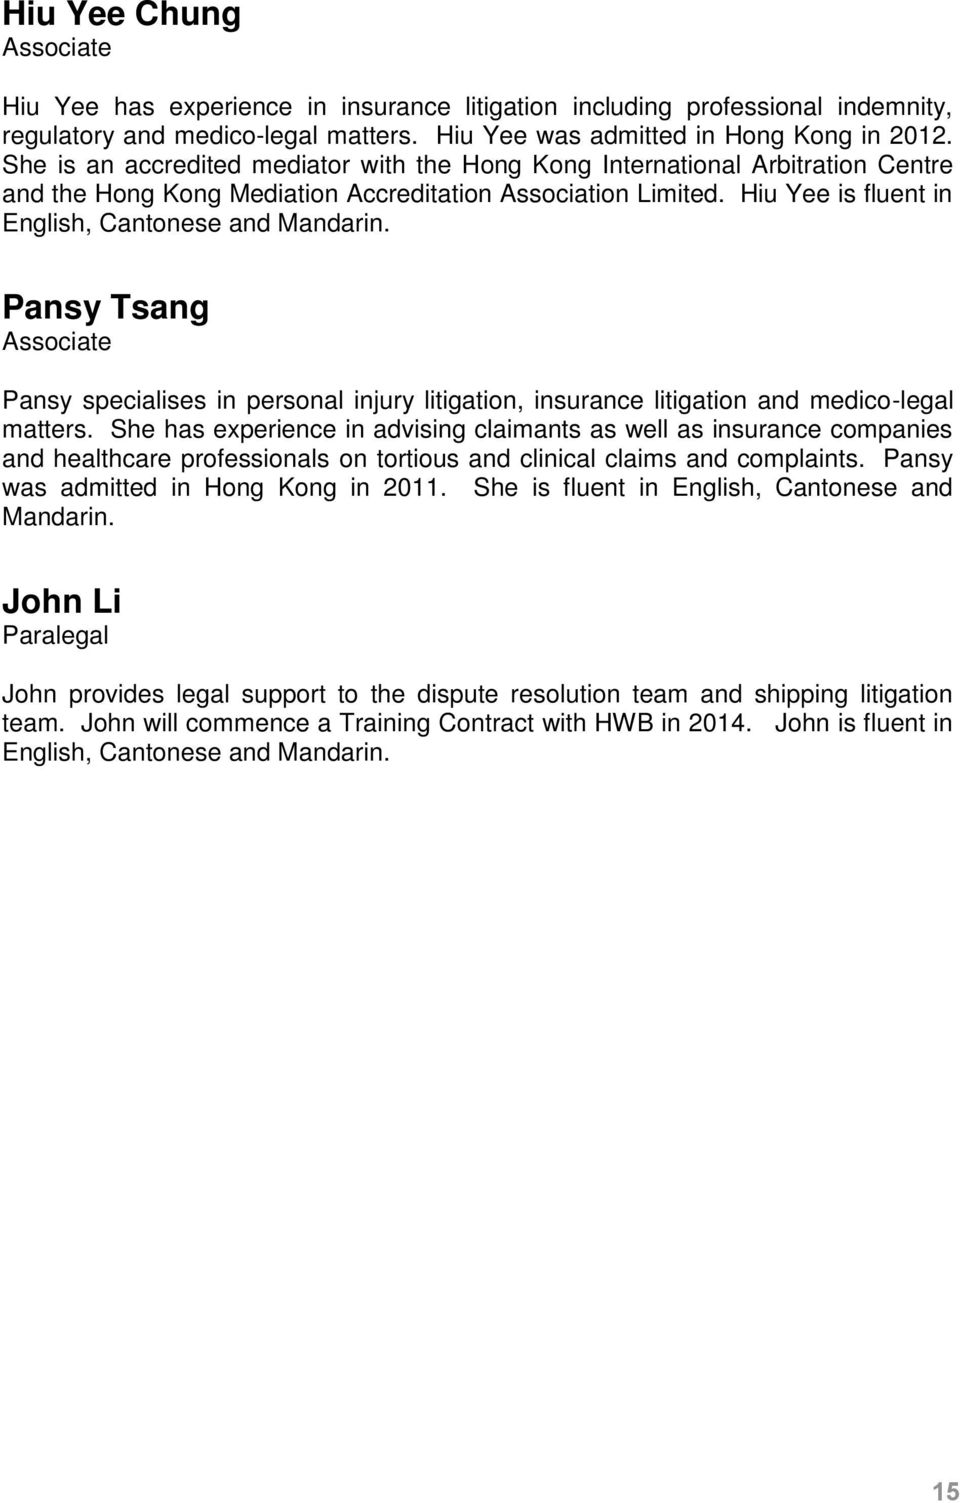 Pansy Tsang Associate Pansy specialises in personal injury litigation, insurance litigation and medico-legal matters.